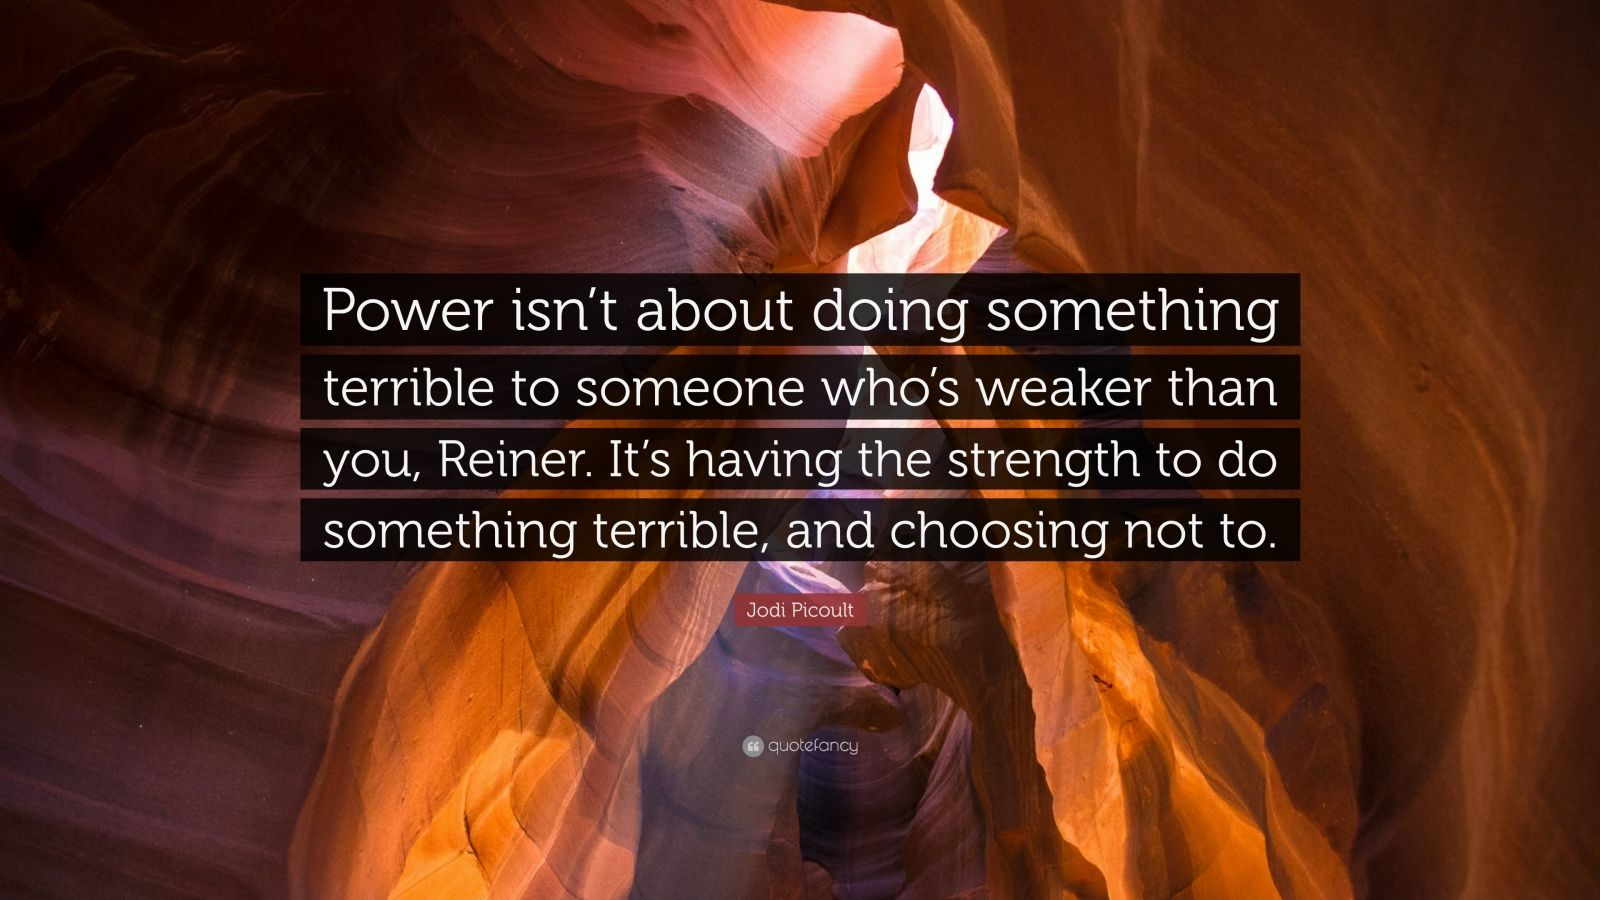 """Jodi Picoult Quote: """"Power isn't about doing something terrible to someone who's weaker than you, Reiner. It's having the strength to do something terrible, and choosing not to."""""""